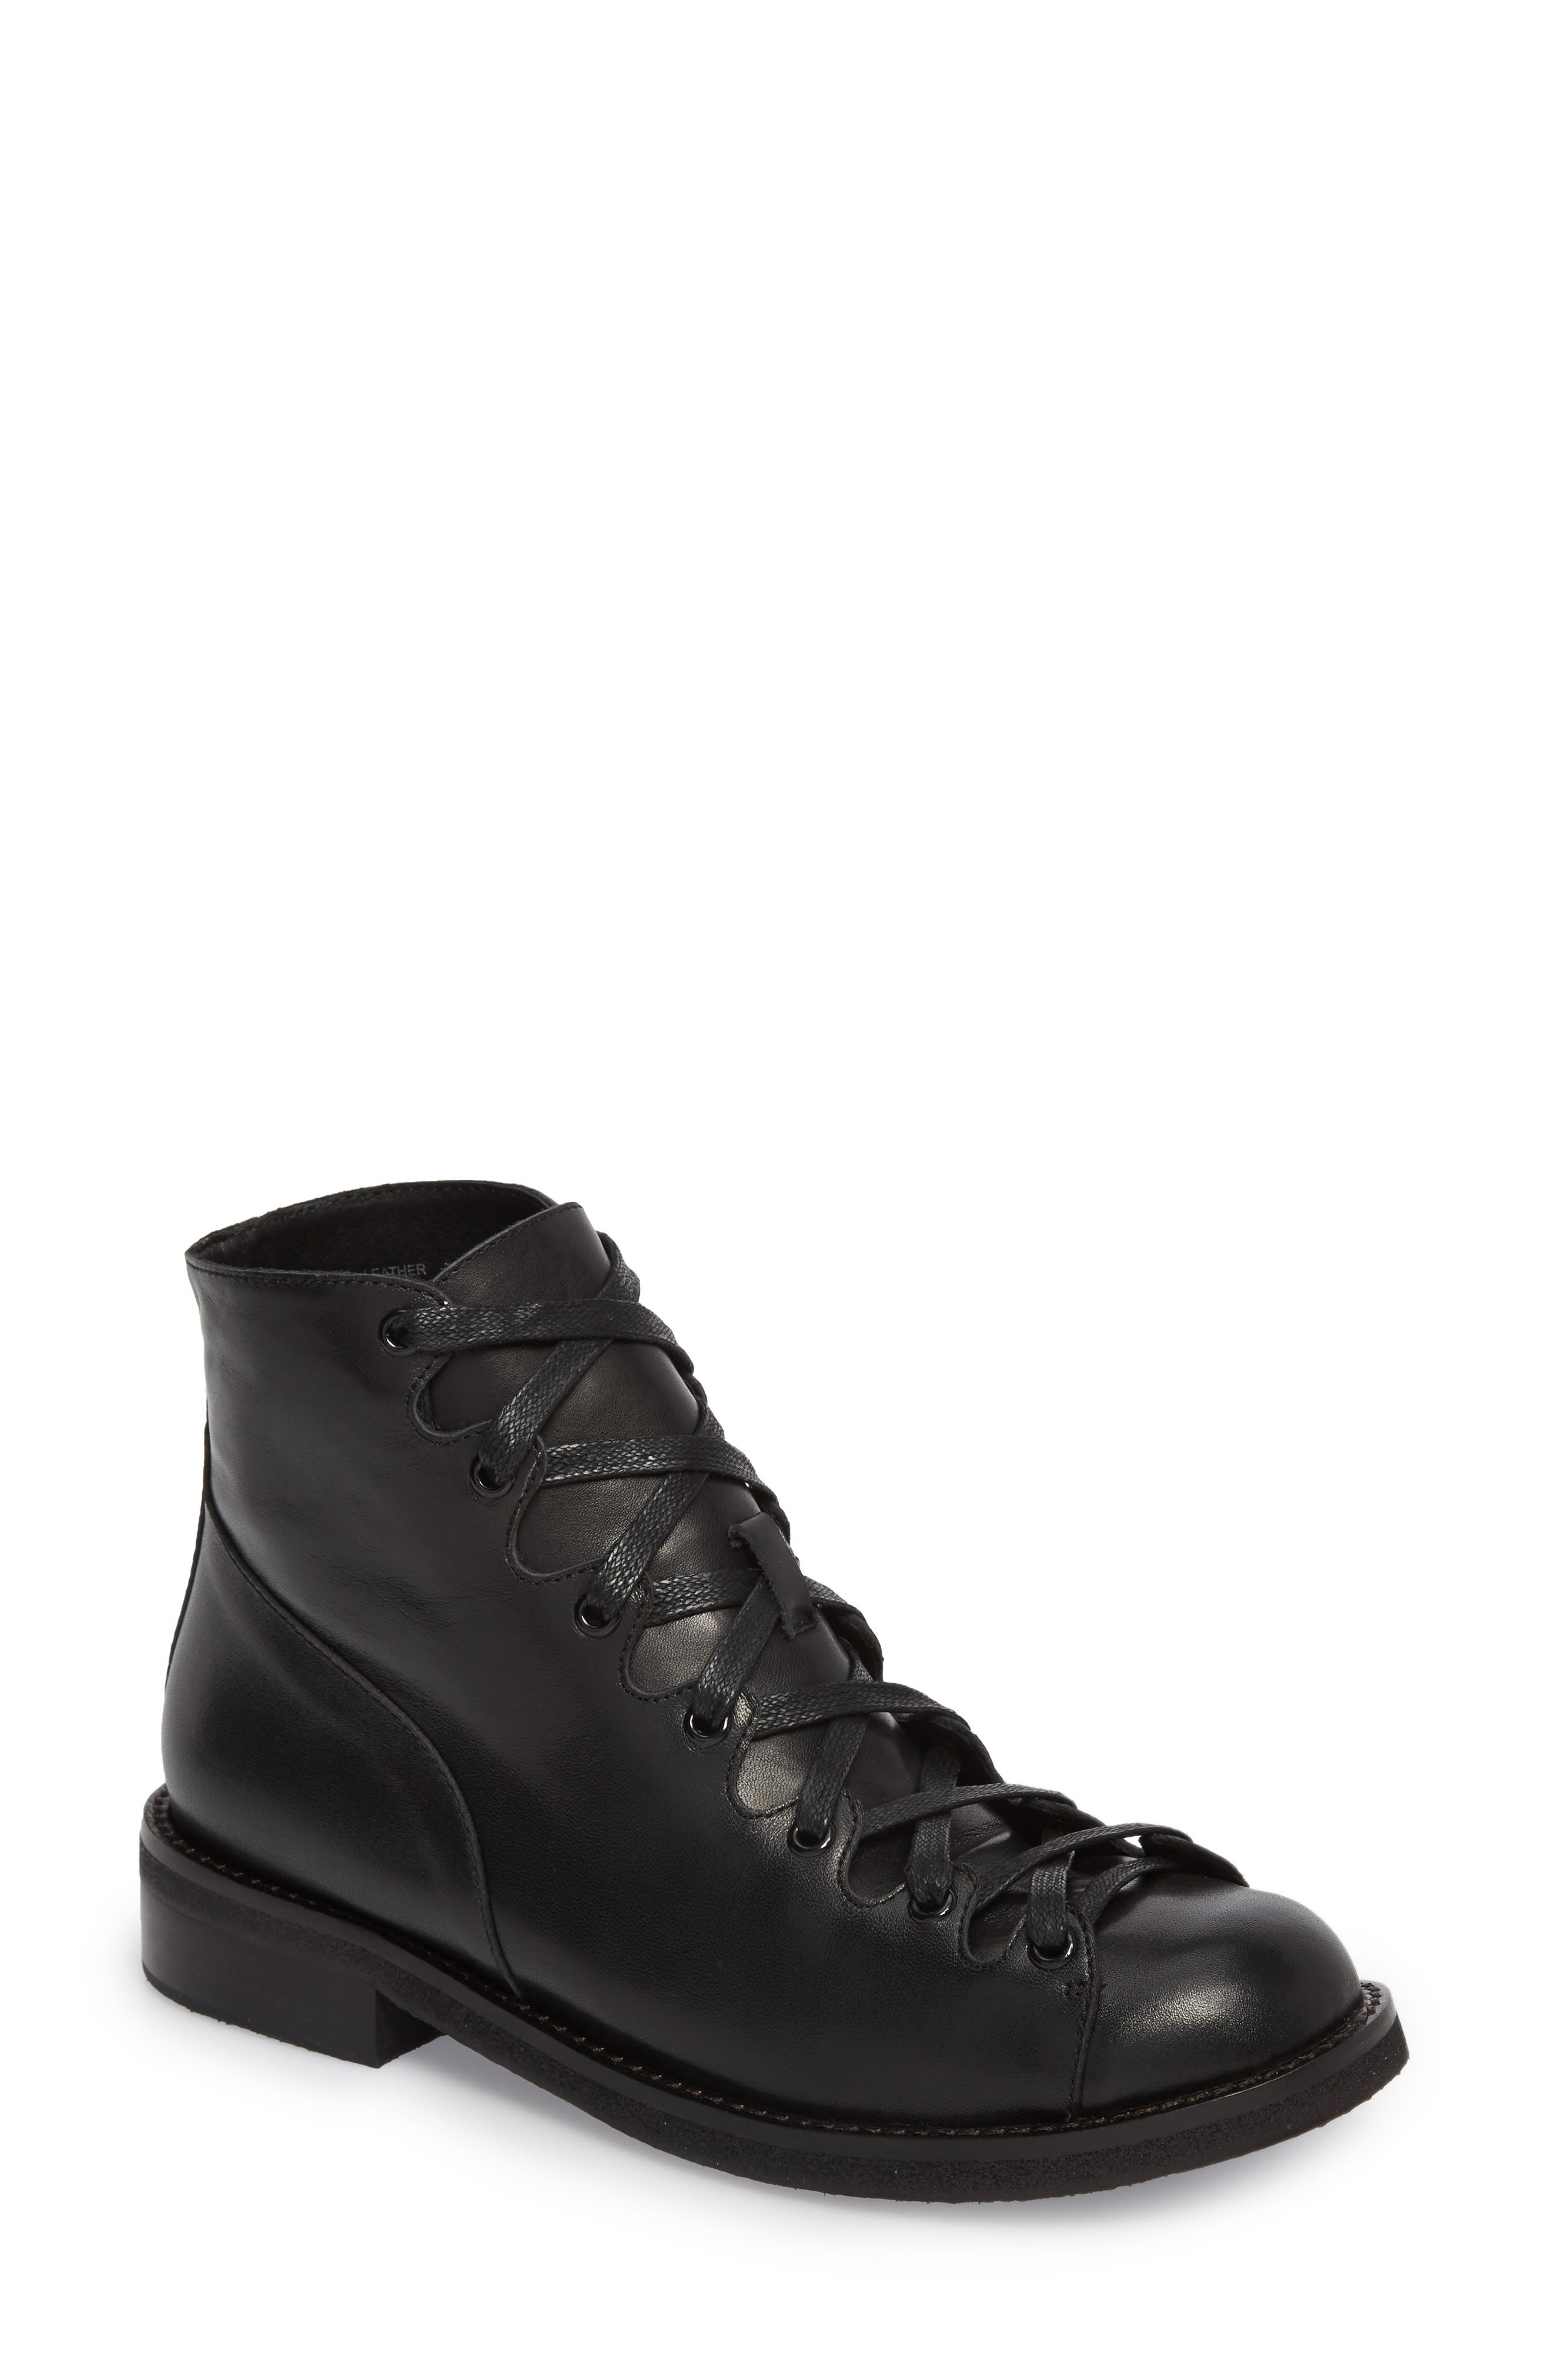 Alternate Image 1 Selected - Grey City Jess Ghillie Combat Boot (Women)